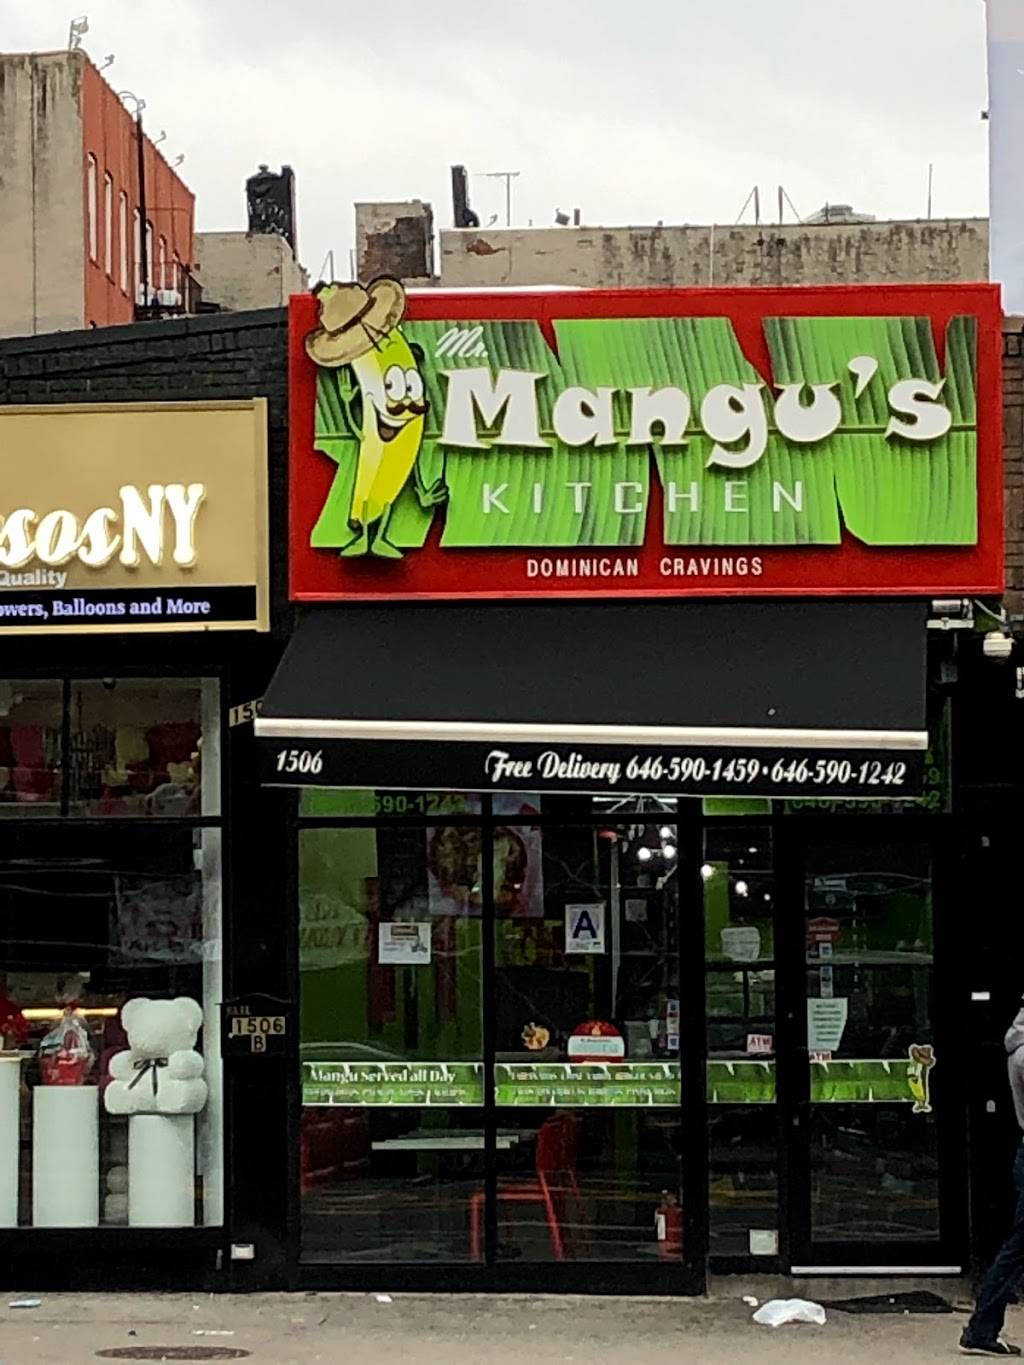 Mr Mangus Kitchen Dominican Cravings | restaurant | 1506 St Nicholas Ave, New York, NY 10033, USA | 6465901459 OR +1 646-590-1459